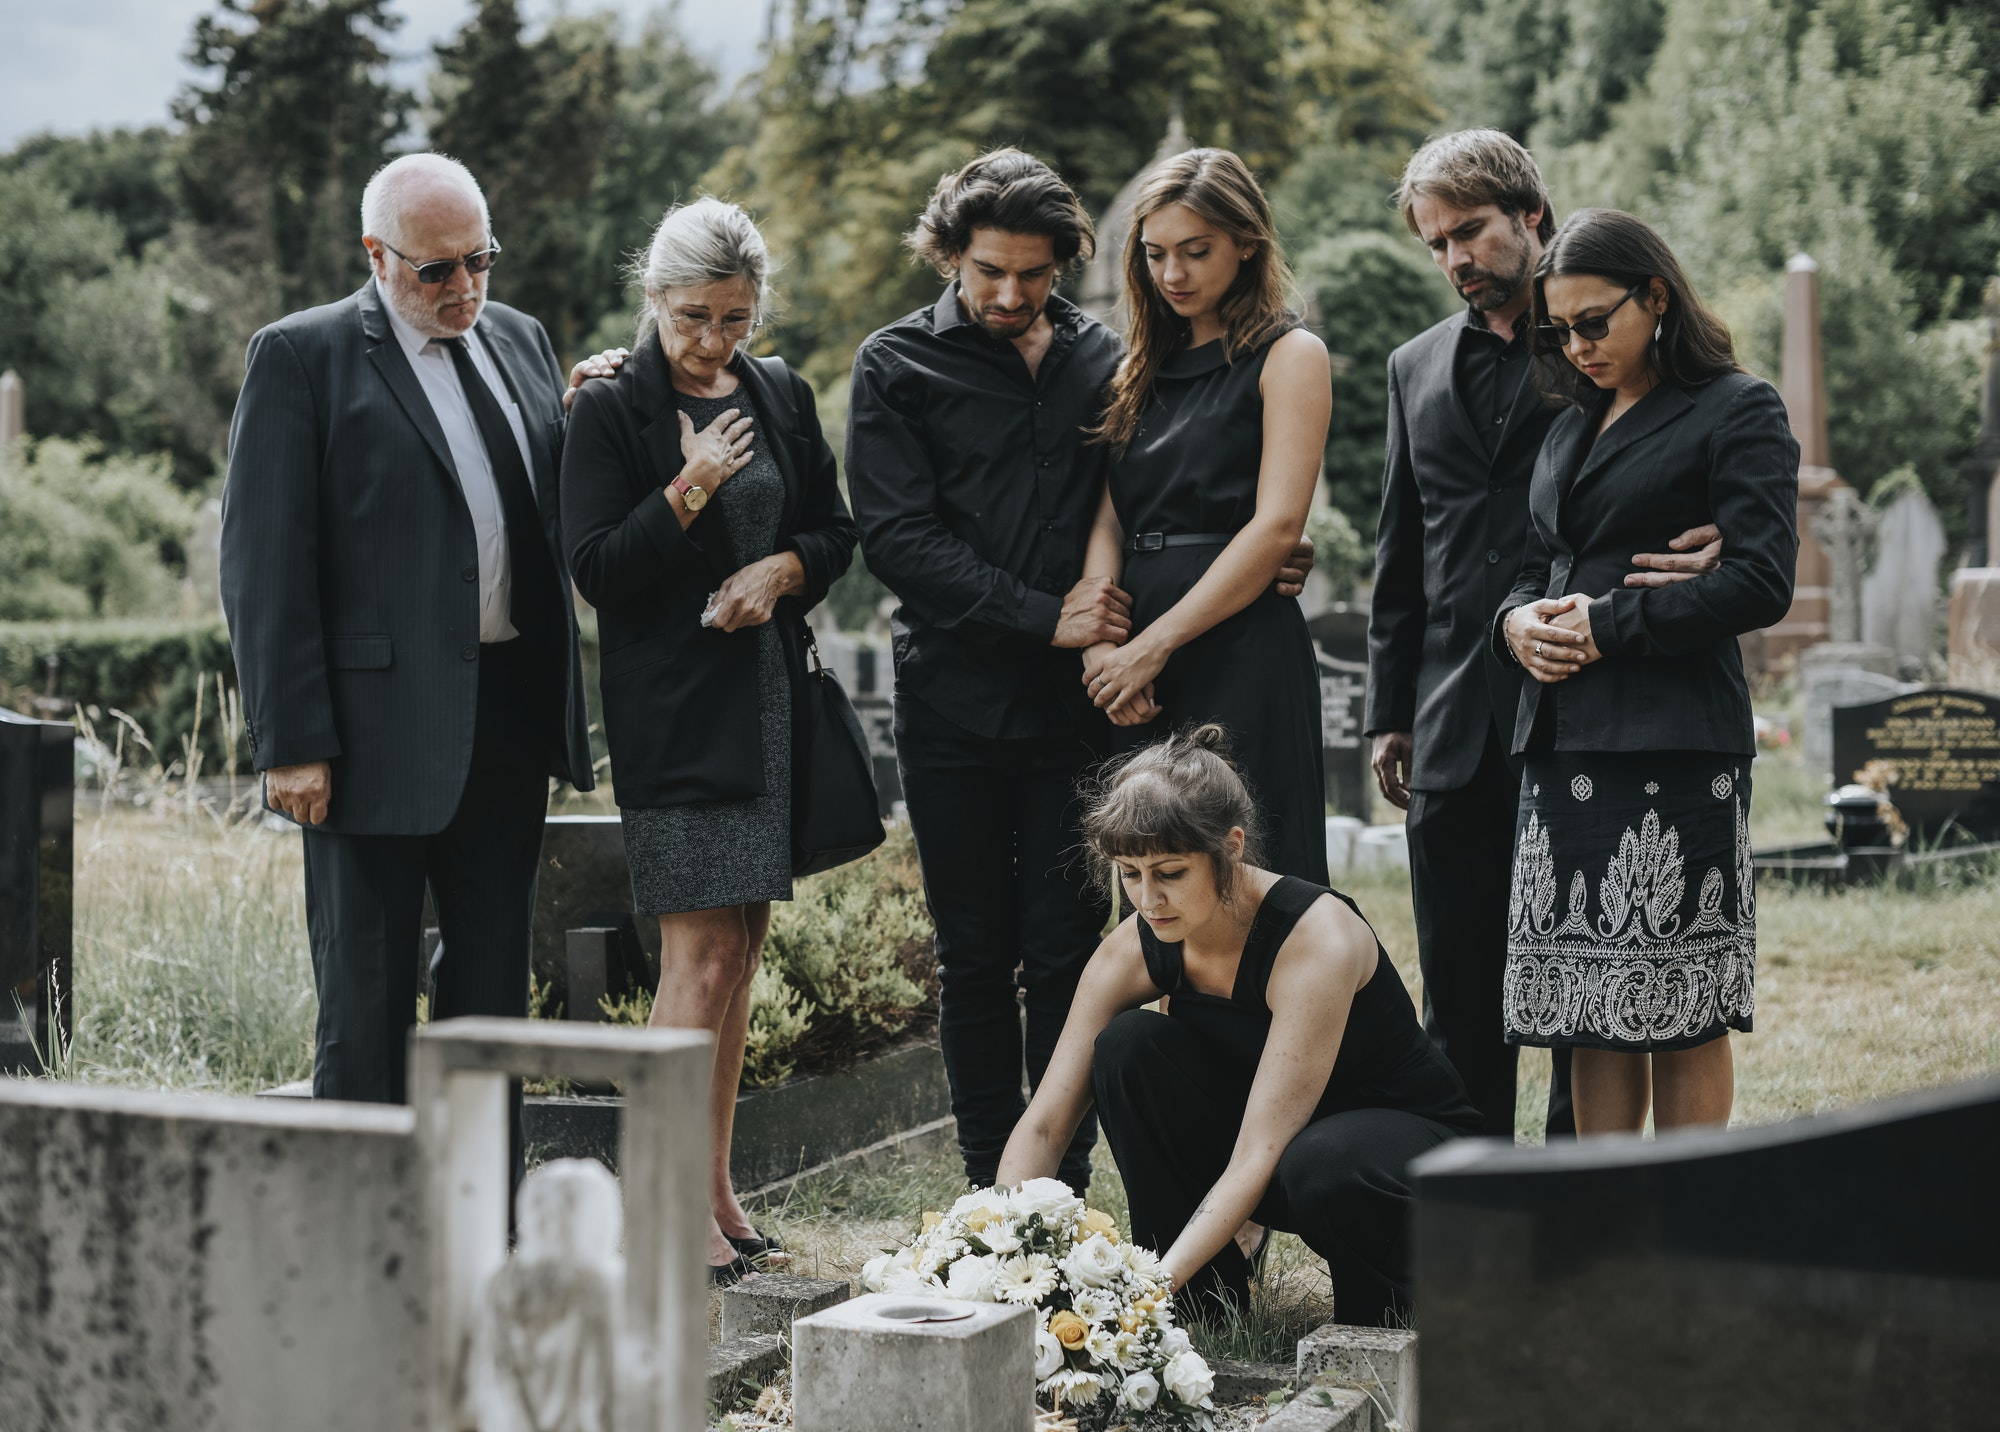 Family laying flowers on the grave